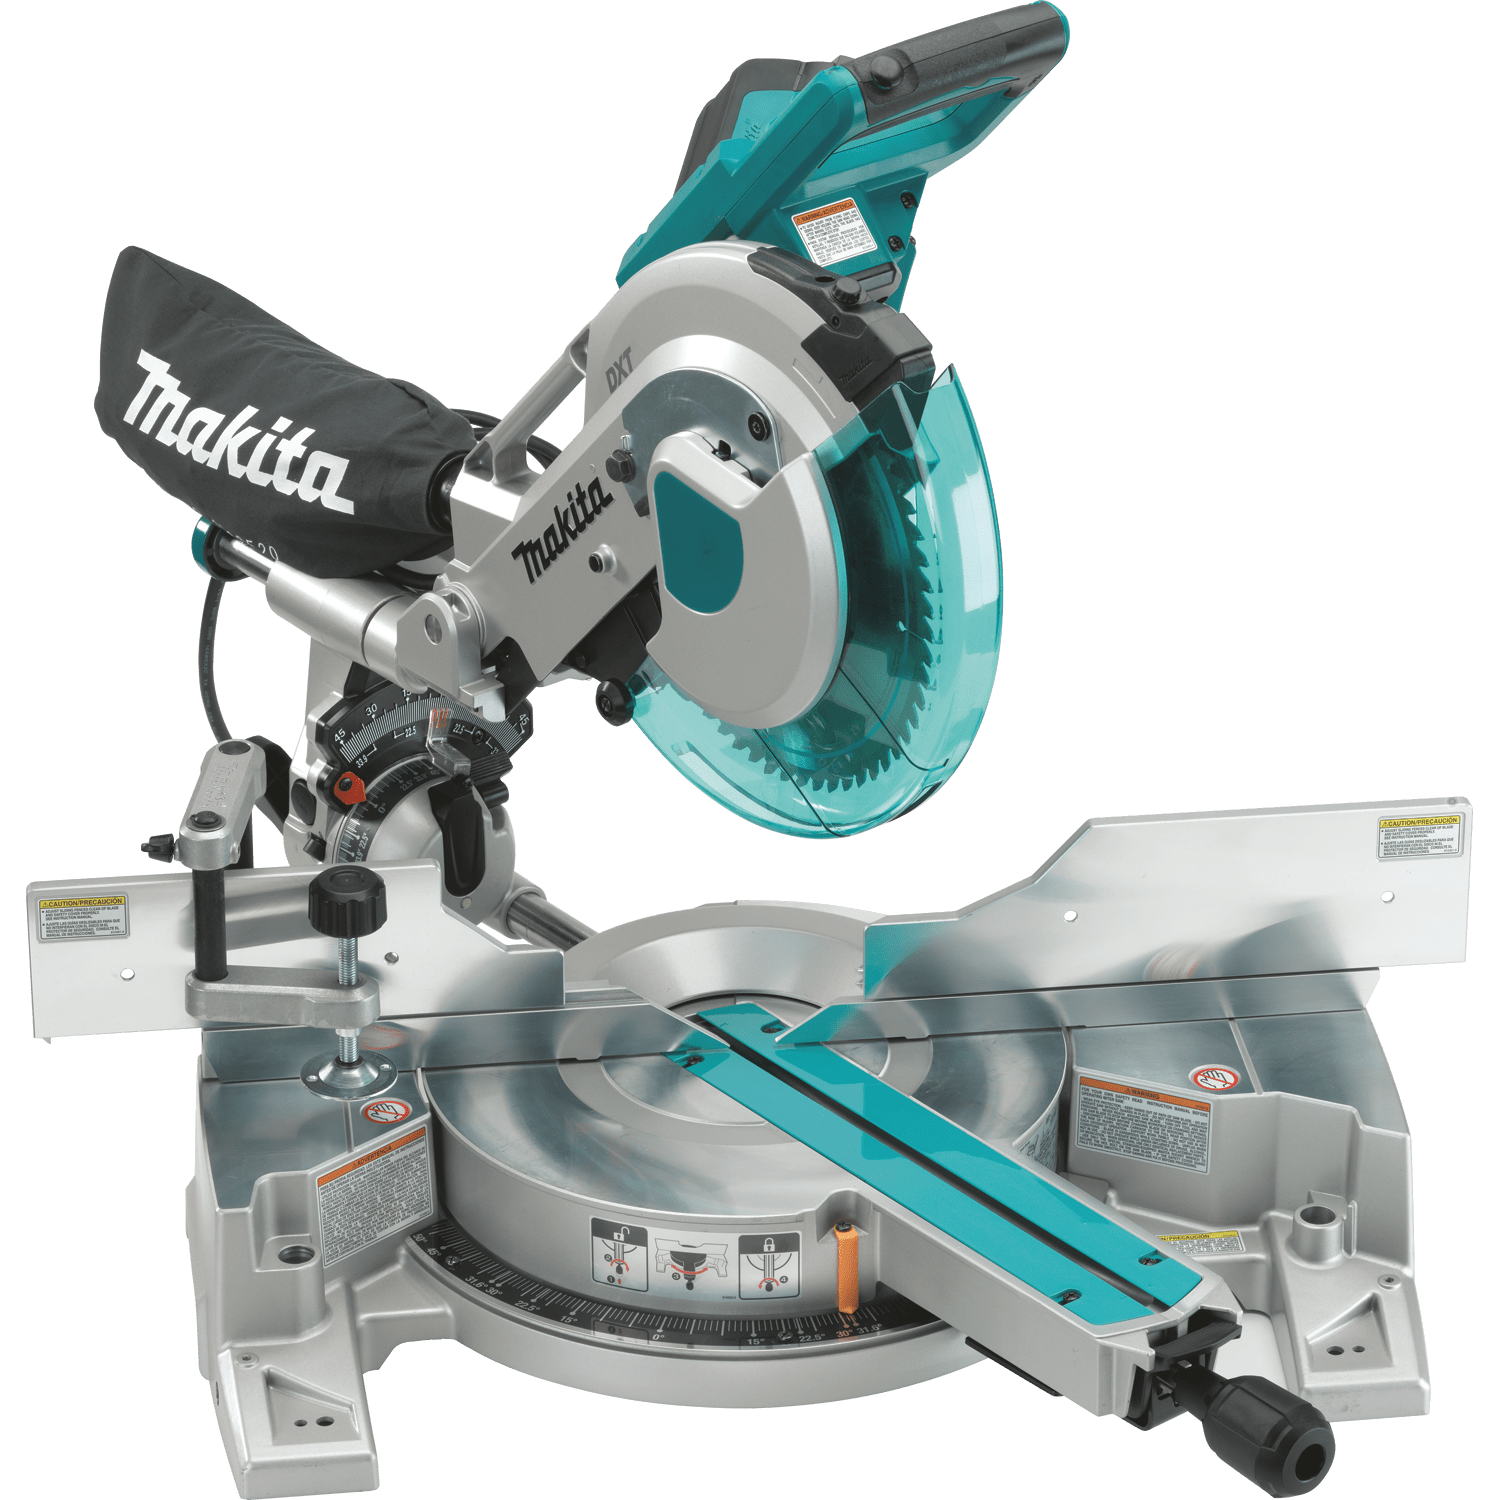 Makita Ls1011 Compound Miter Saw Parts